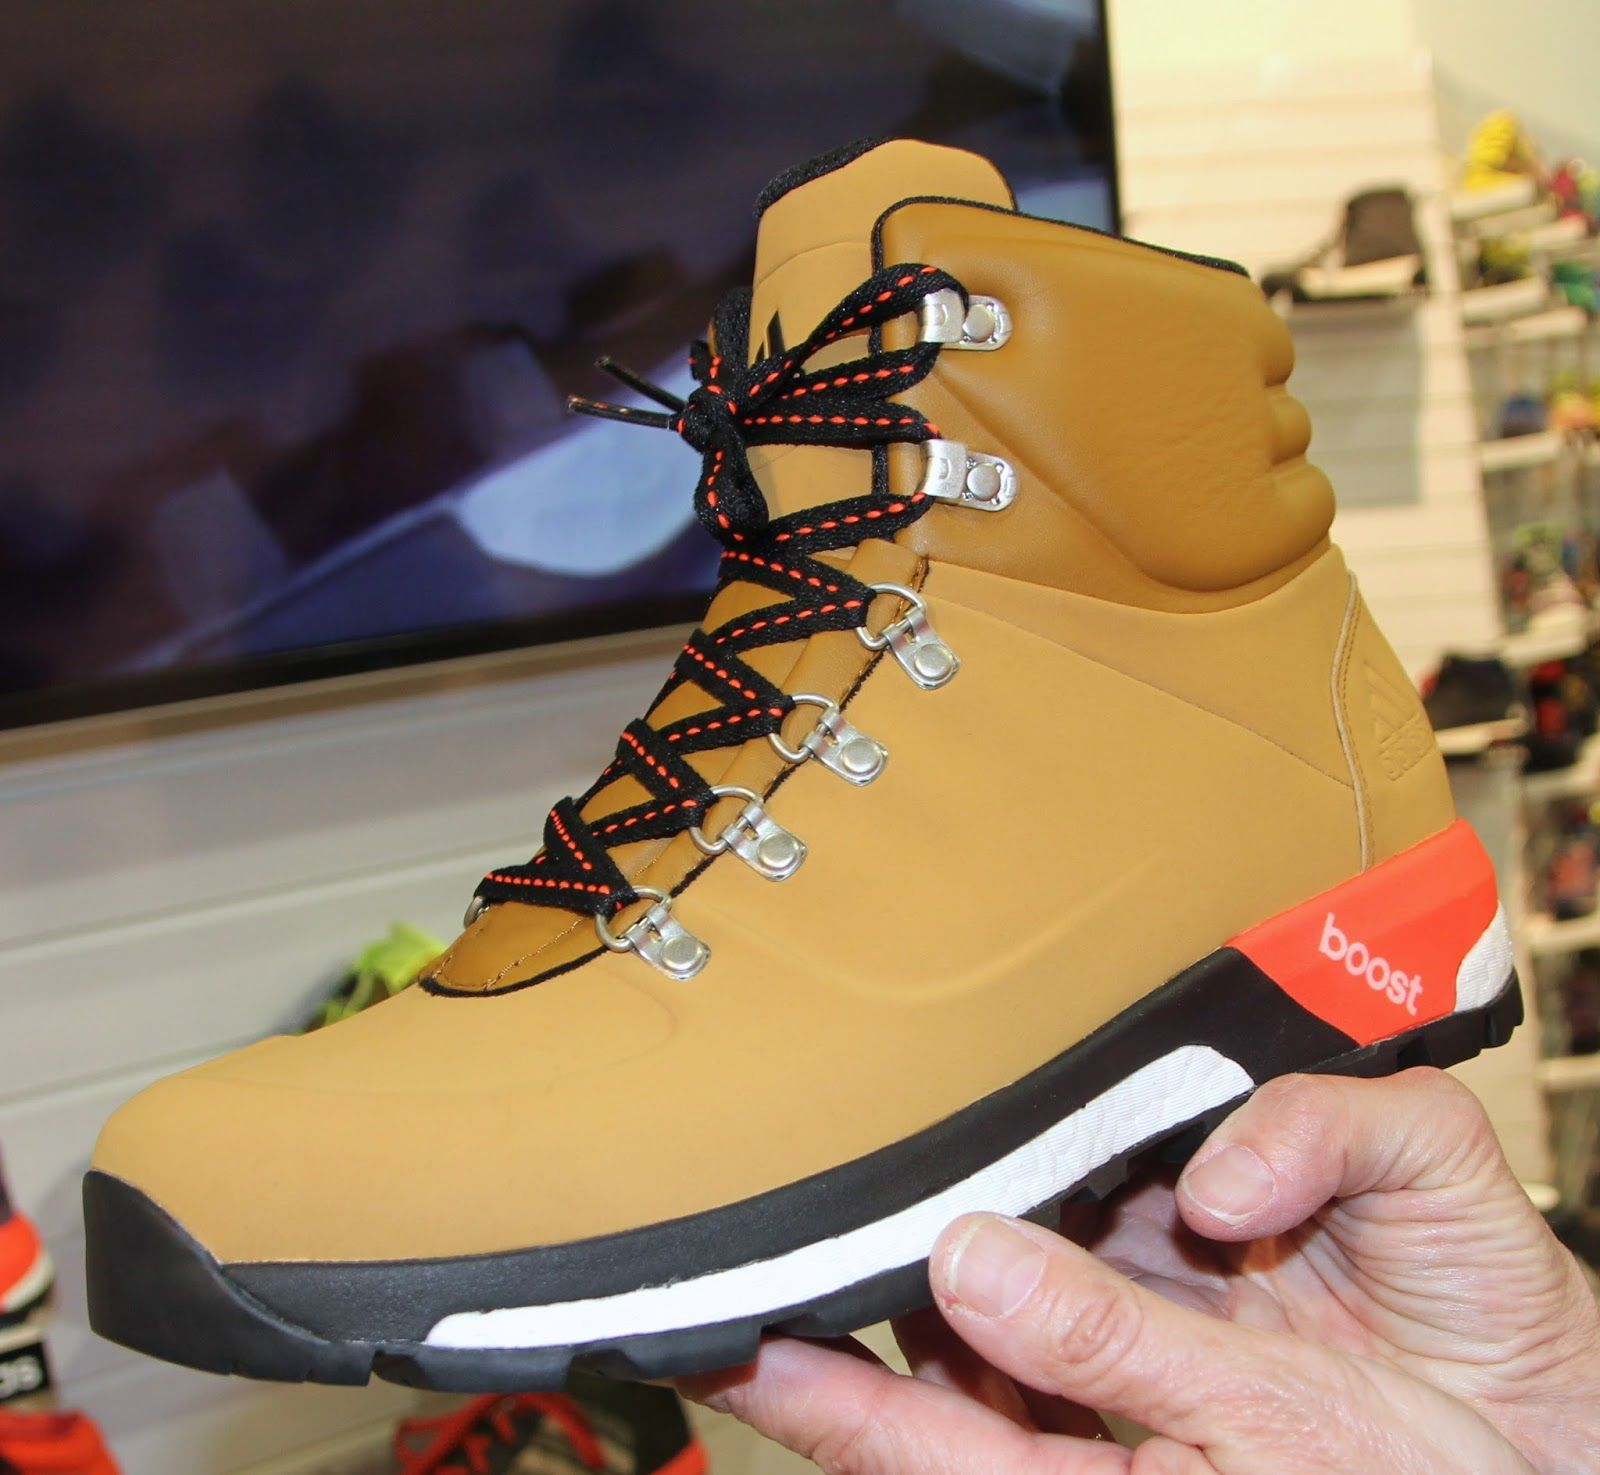 Reductor Mutuo Melancólico  adidas terrex climaheat ultimate boost boots - Google Search   Calzas